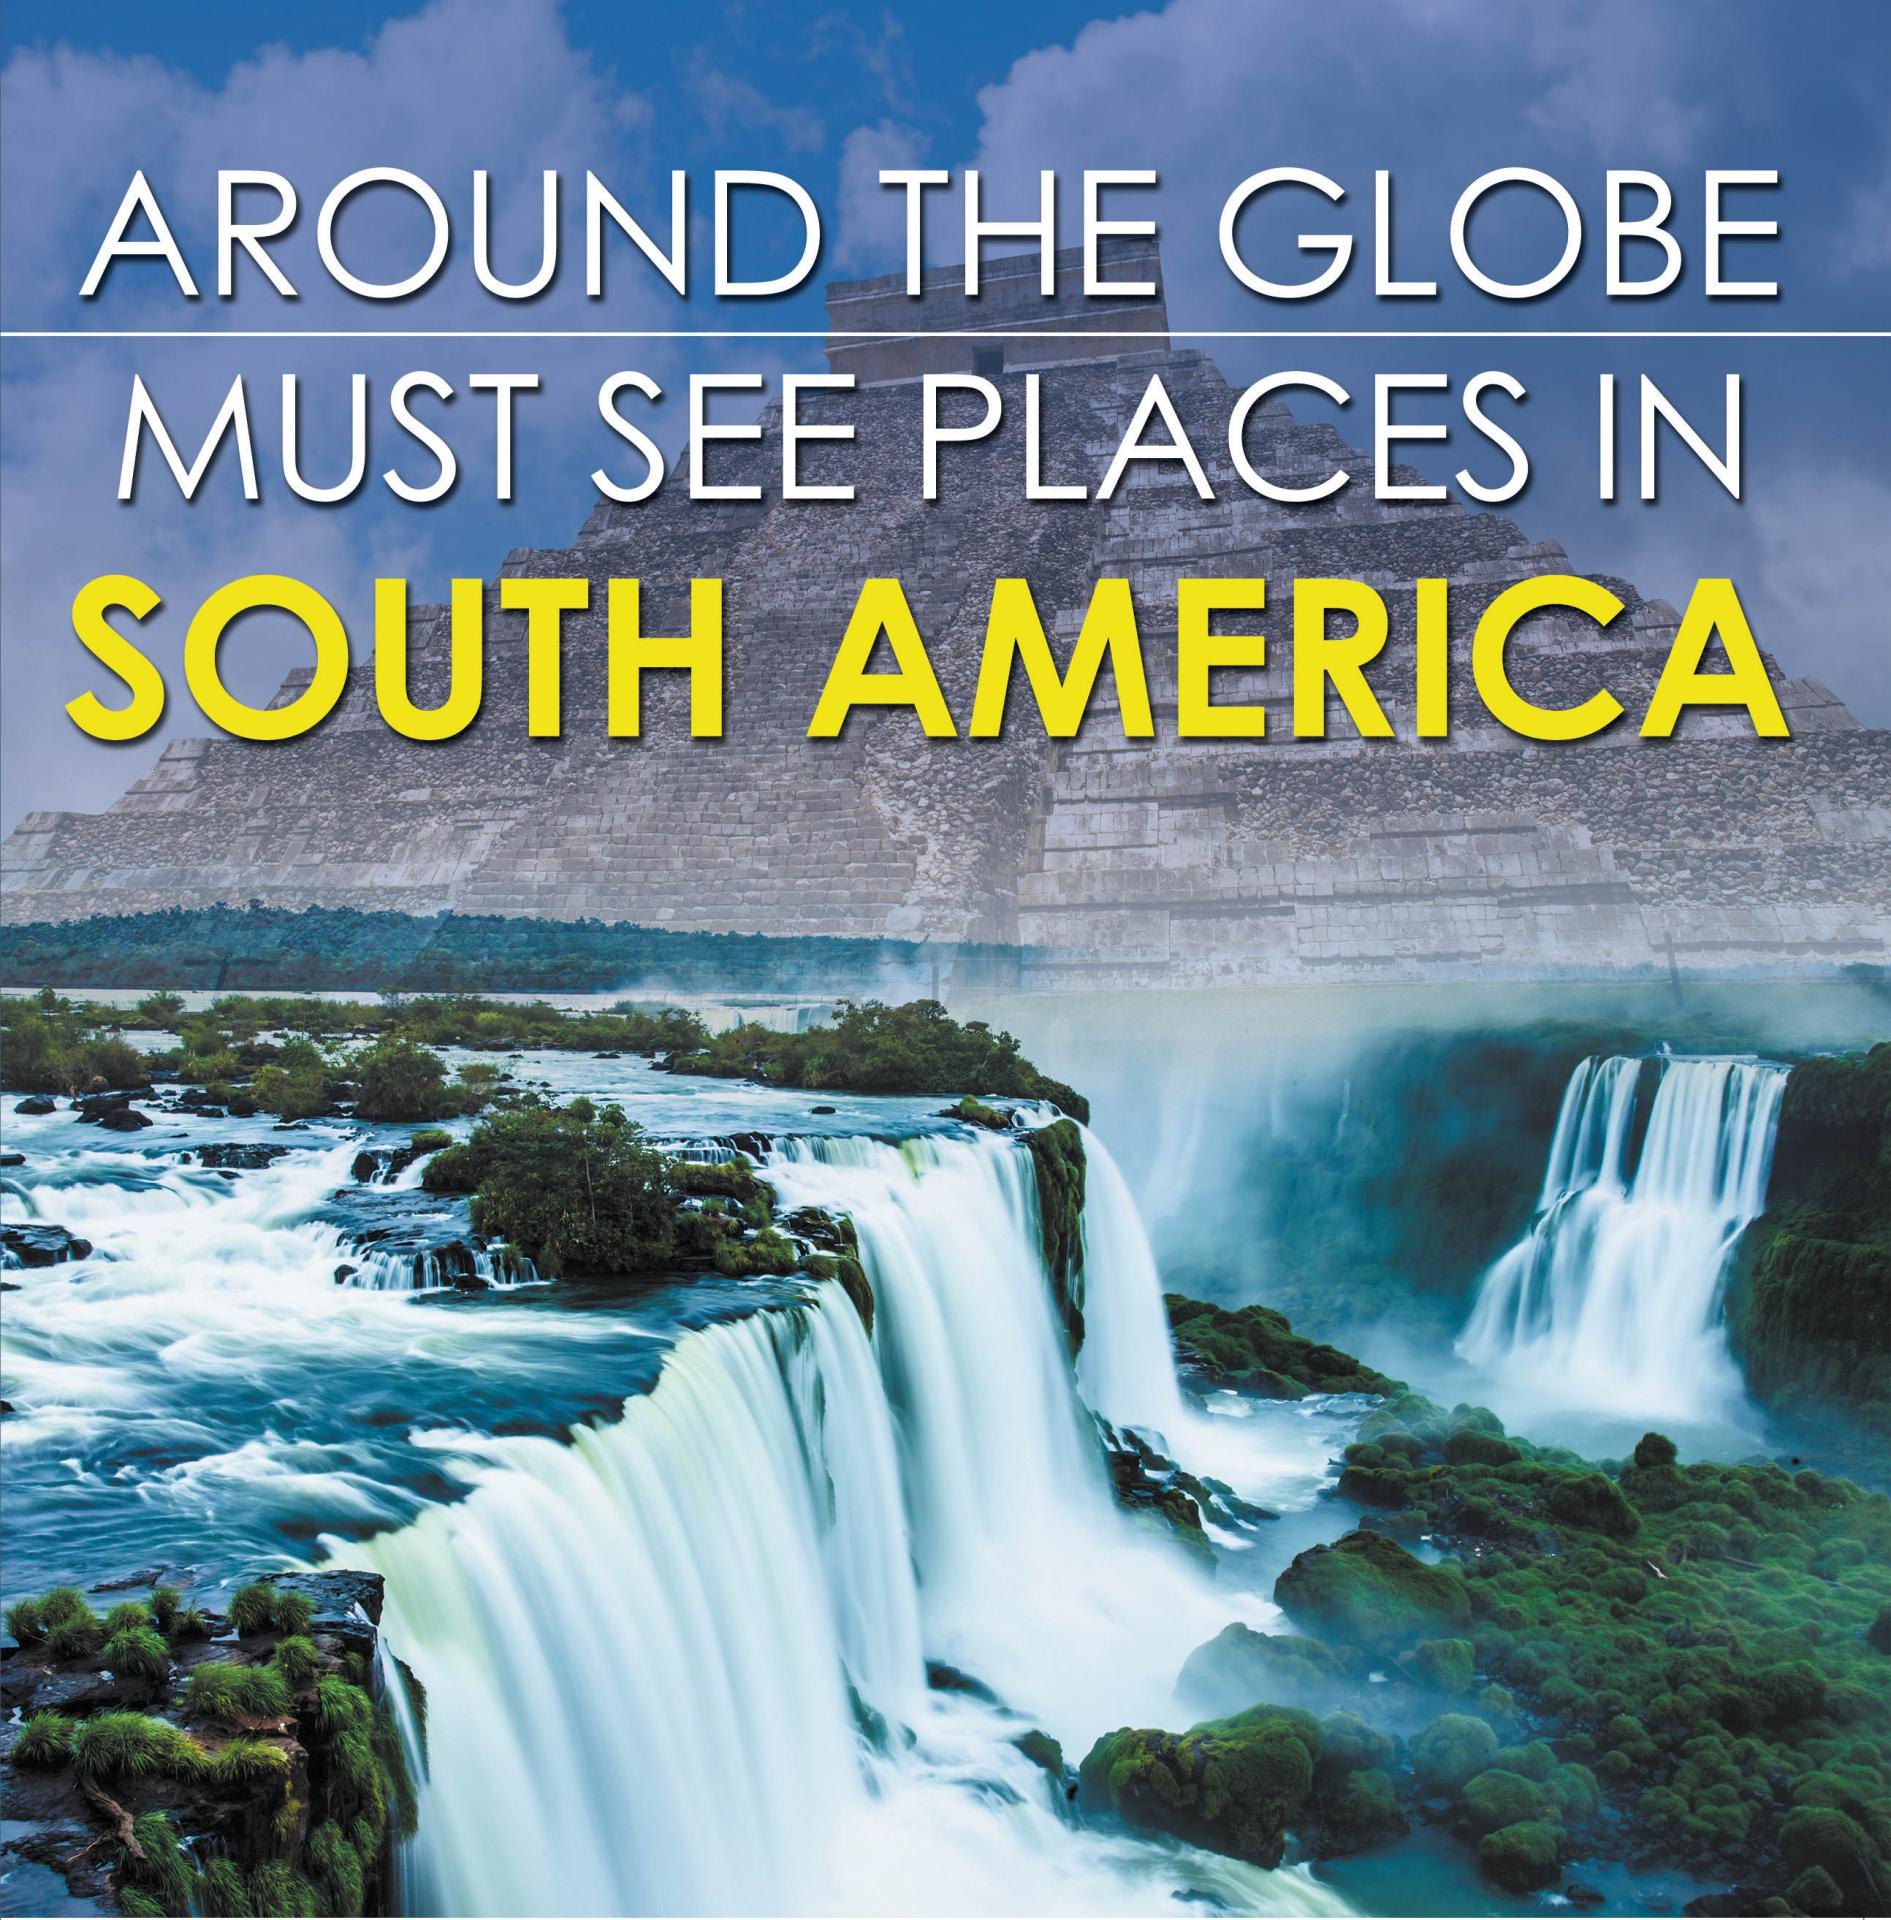 Around The Globe - Must See Places in South America South America Travel Guide for Kids